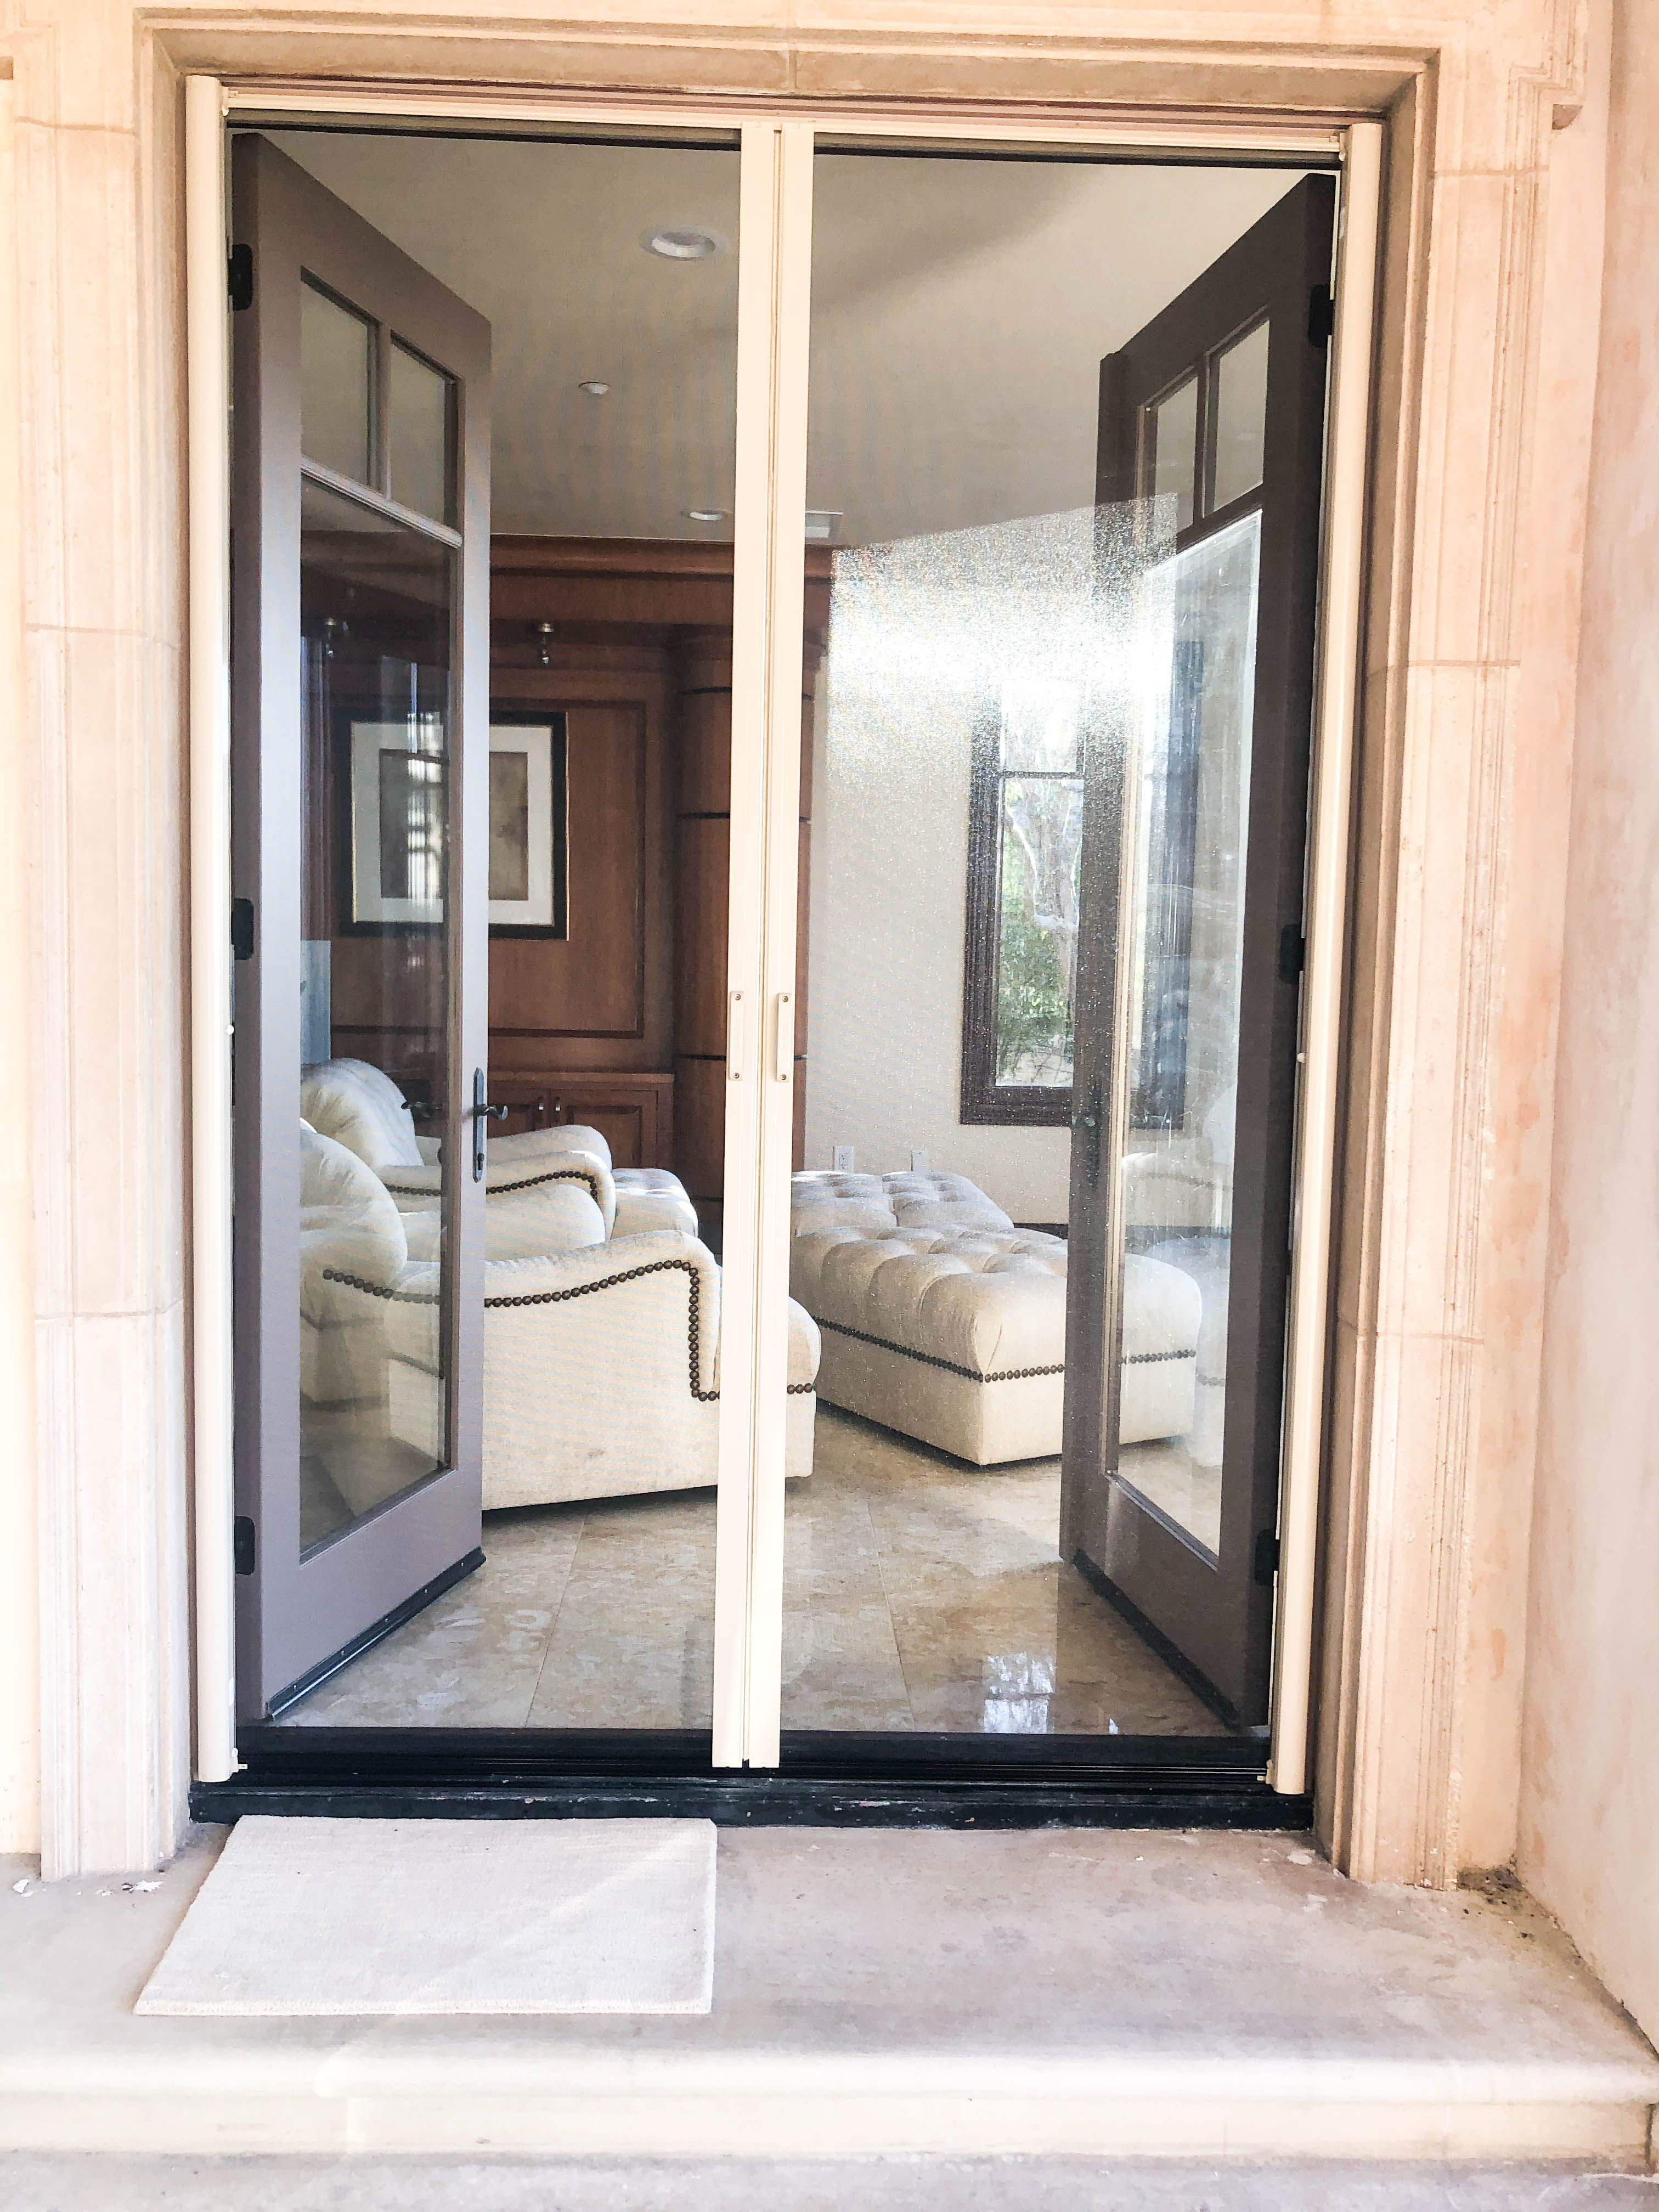 Let The Fresh Air Into Your Home Without Letting The Bugs In With It Check Out These Double Retractabl In 2020 Retractable Screen French Doors Retractable Screen Door